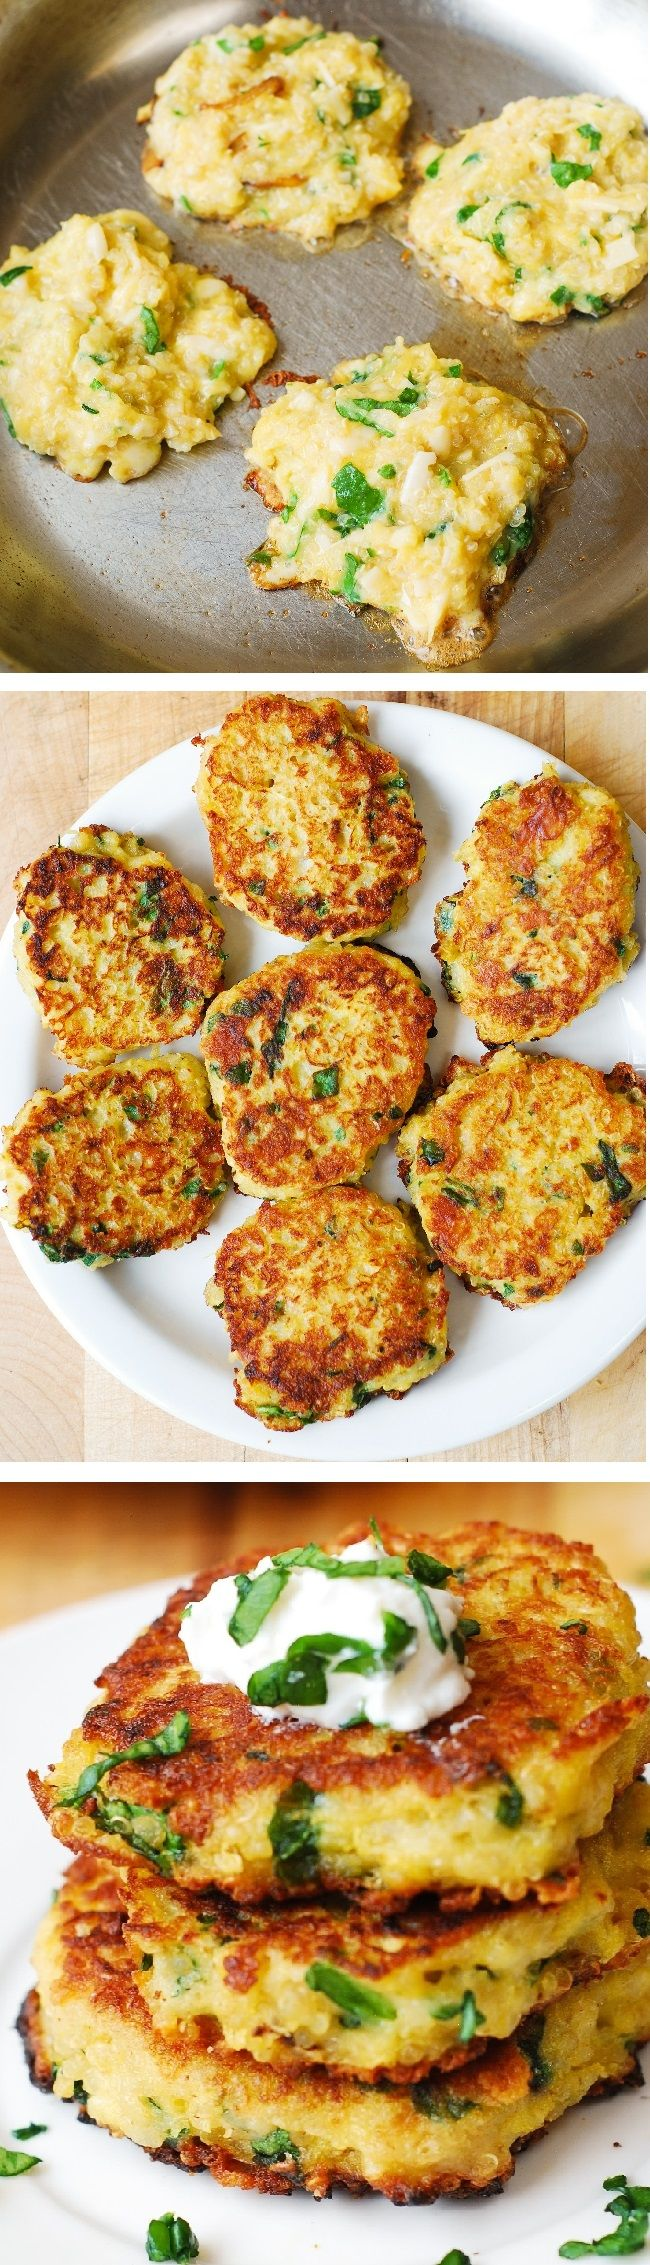 Spaghetti Squash, Quinoa, Spinach and Parmesan Fritters #ahealthyfoodie